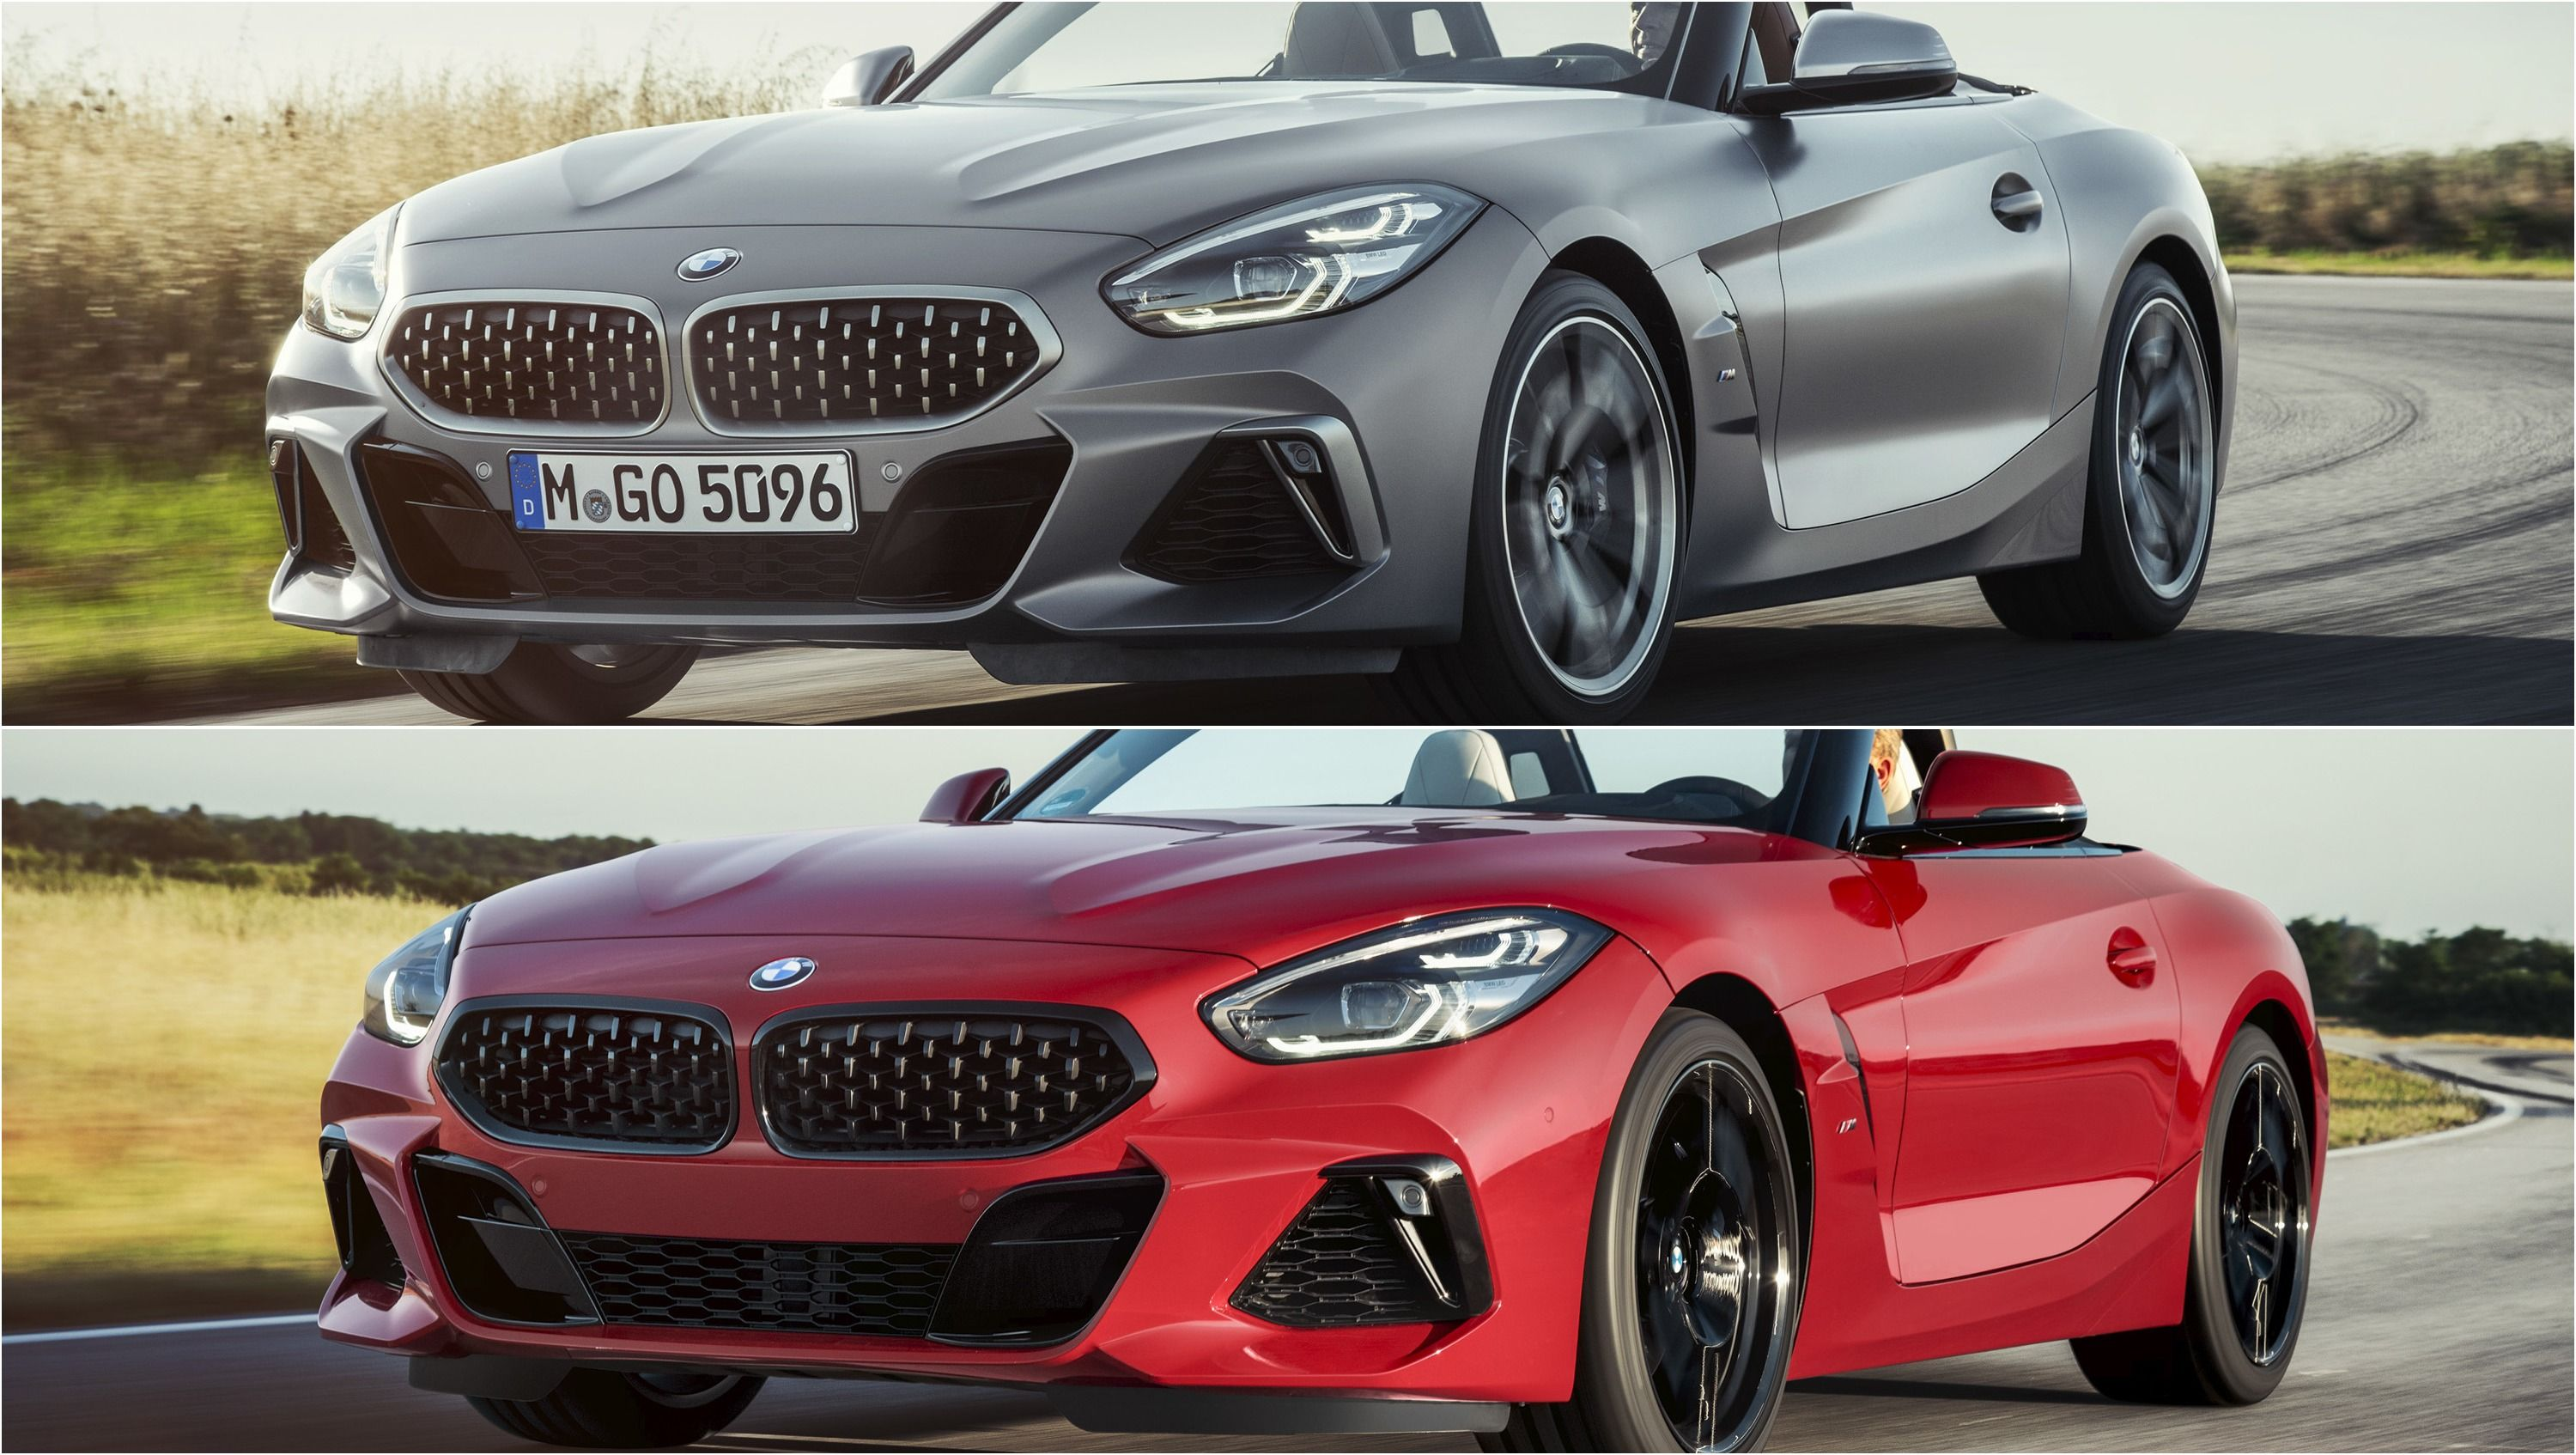 2020 Toyota Supra Vs 2019 Bmw Z4 Top Speed Bmw Z4 Bmw Toyota Supra